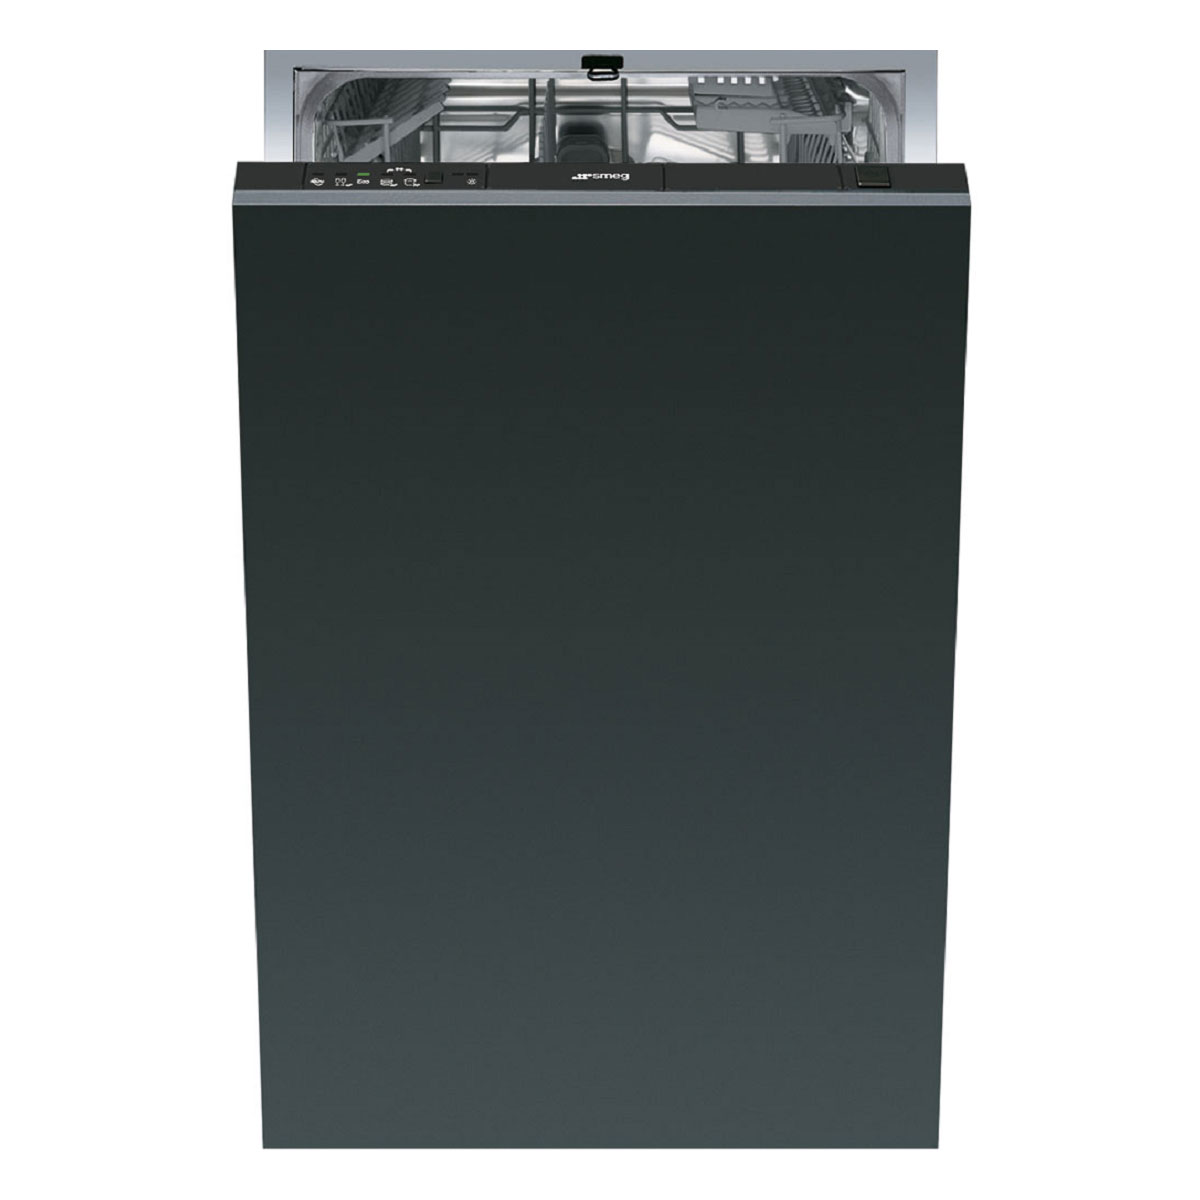 Smeg DWAFI4510 Fully Integrated Dishwasher